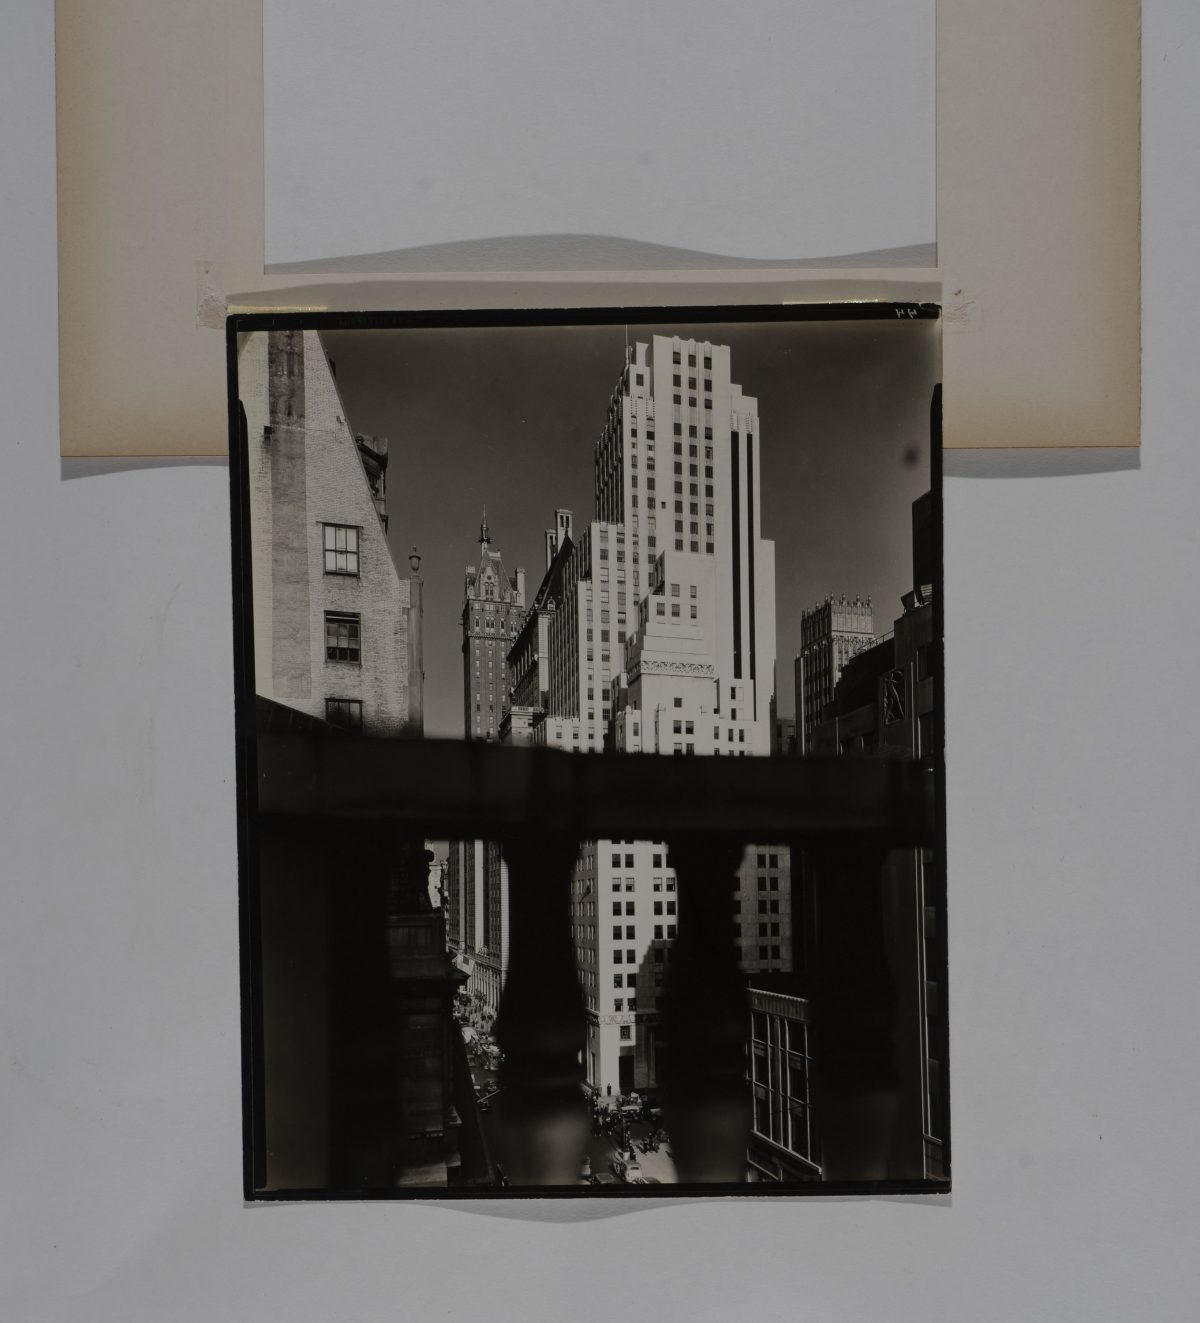 Berenice Abbott - Squibb Building with Sherry Netherland in background